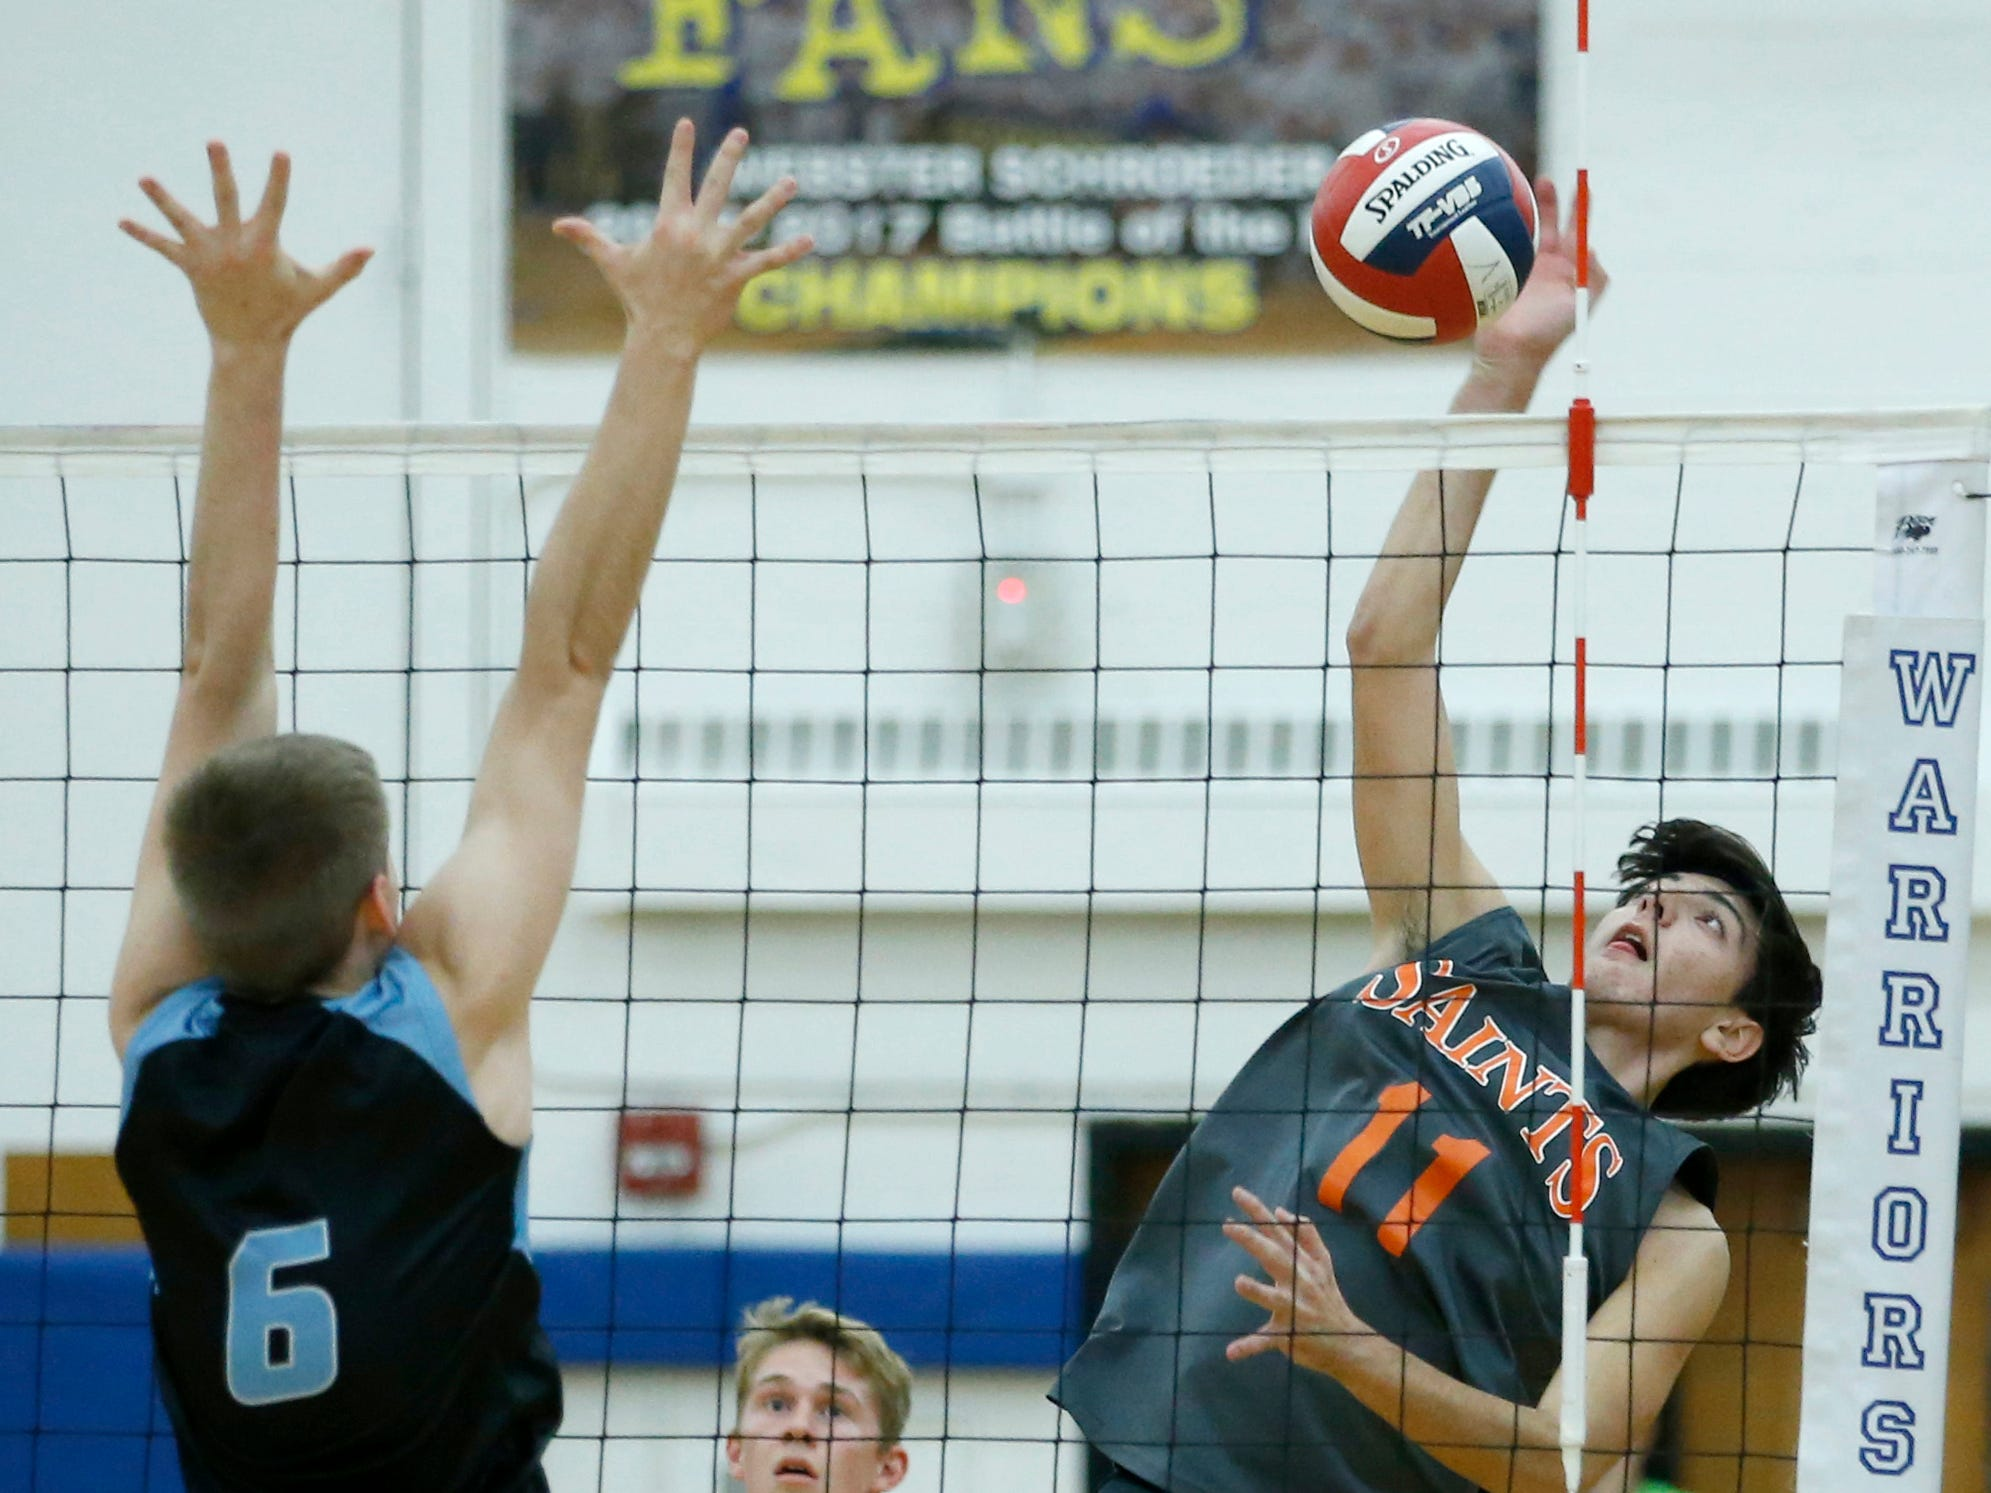 Class B volleyball final: Churchville-Chili's Matteo Ventura attacks against Midlakes' Maverick Coryell in the first set at Webster Schroeder High School.